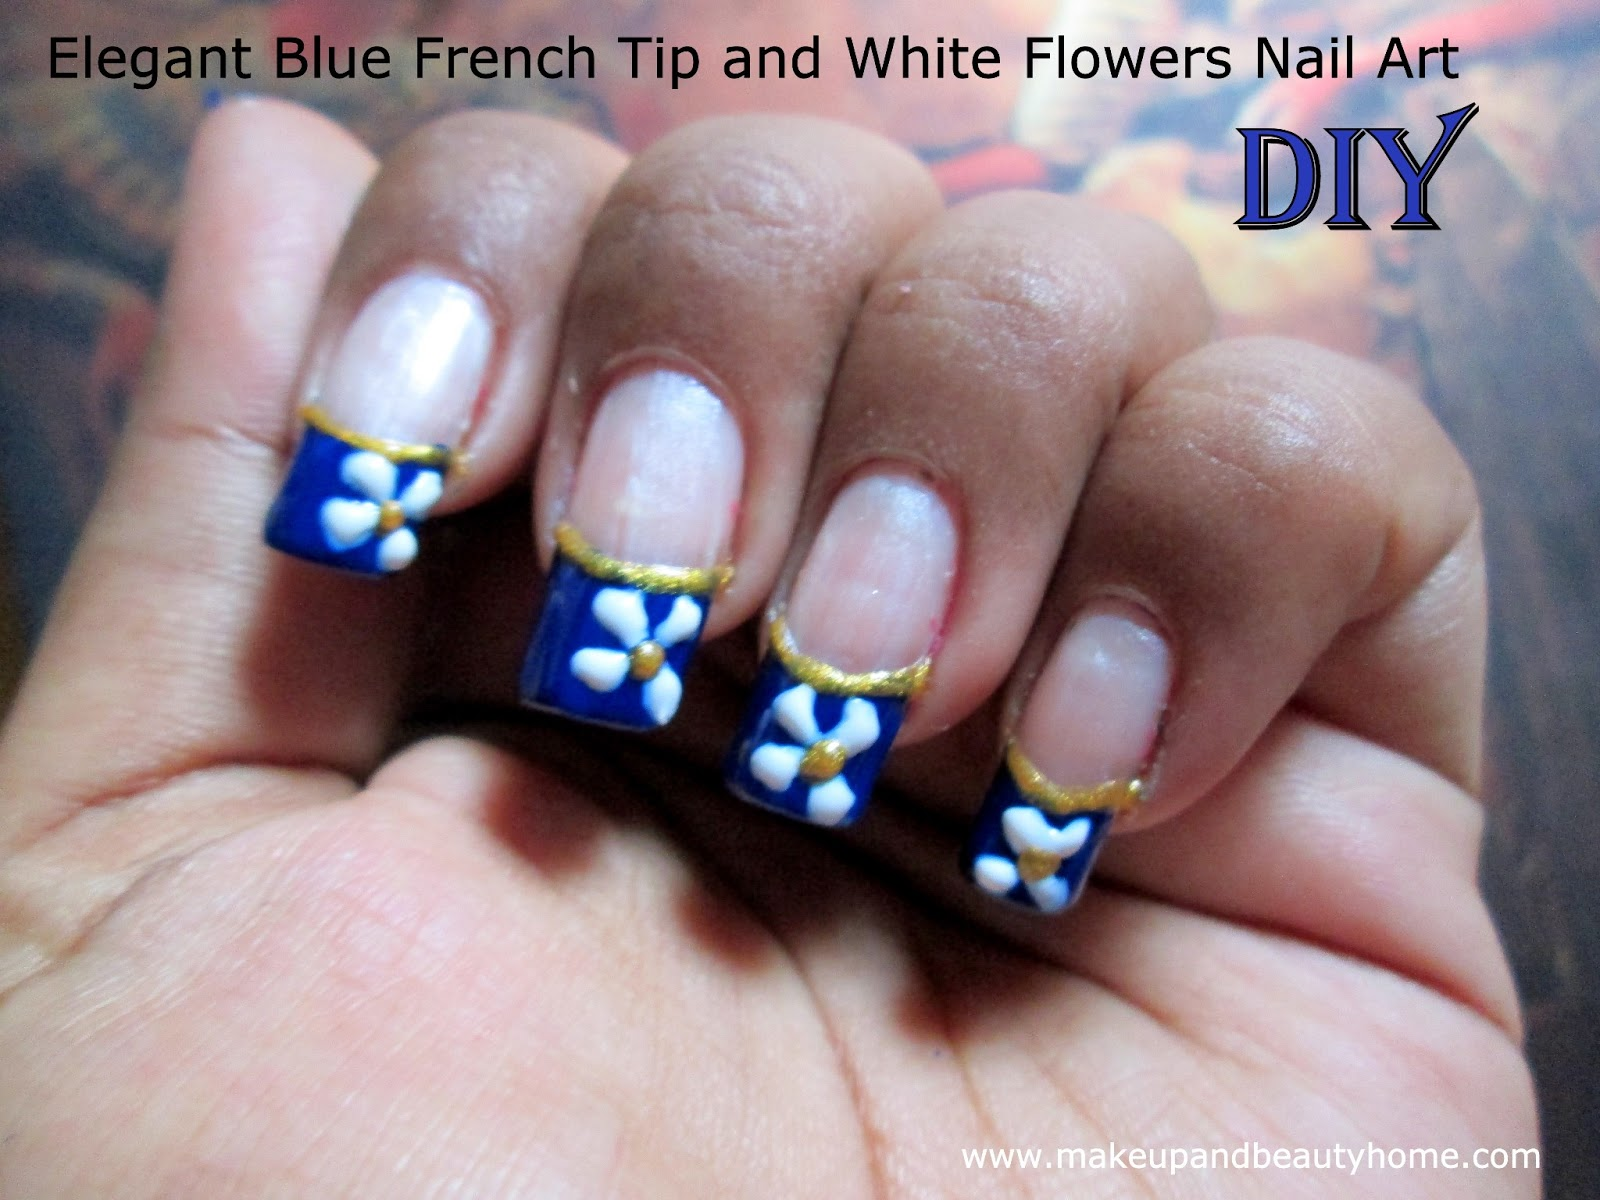 Elegant Blue French Tip and White Flowers Nail Art ~ DIY Tutorial ...